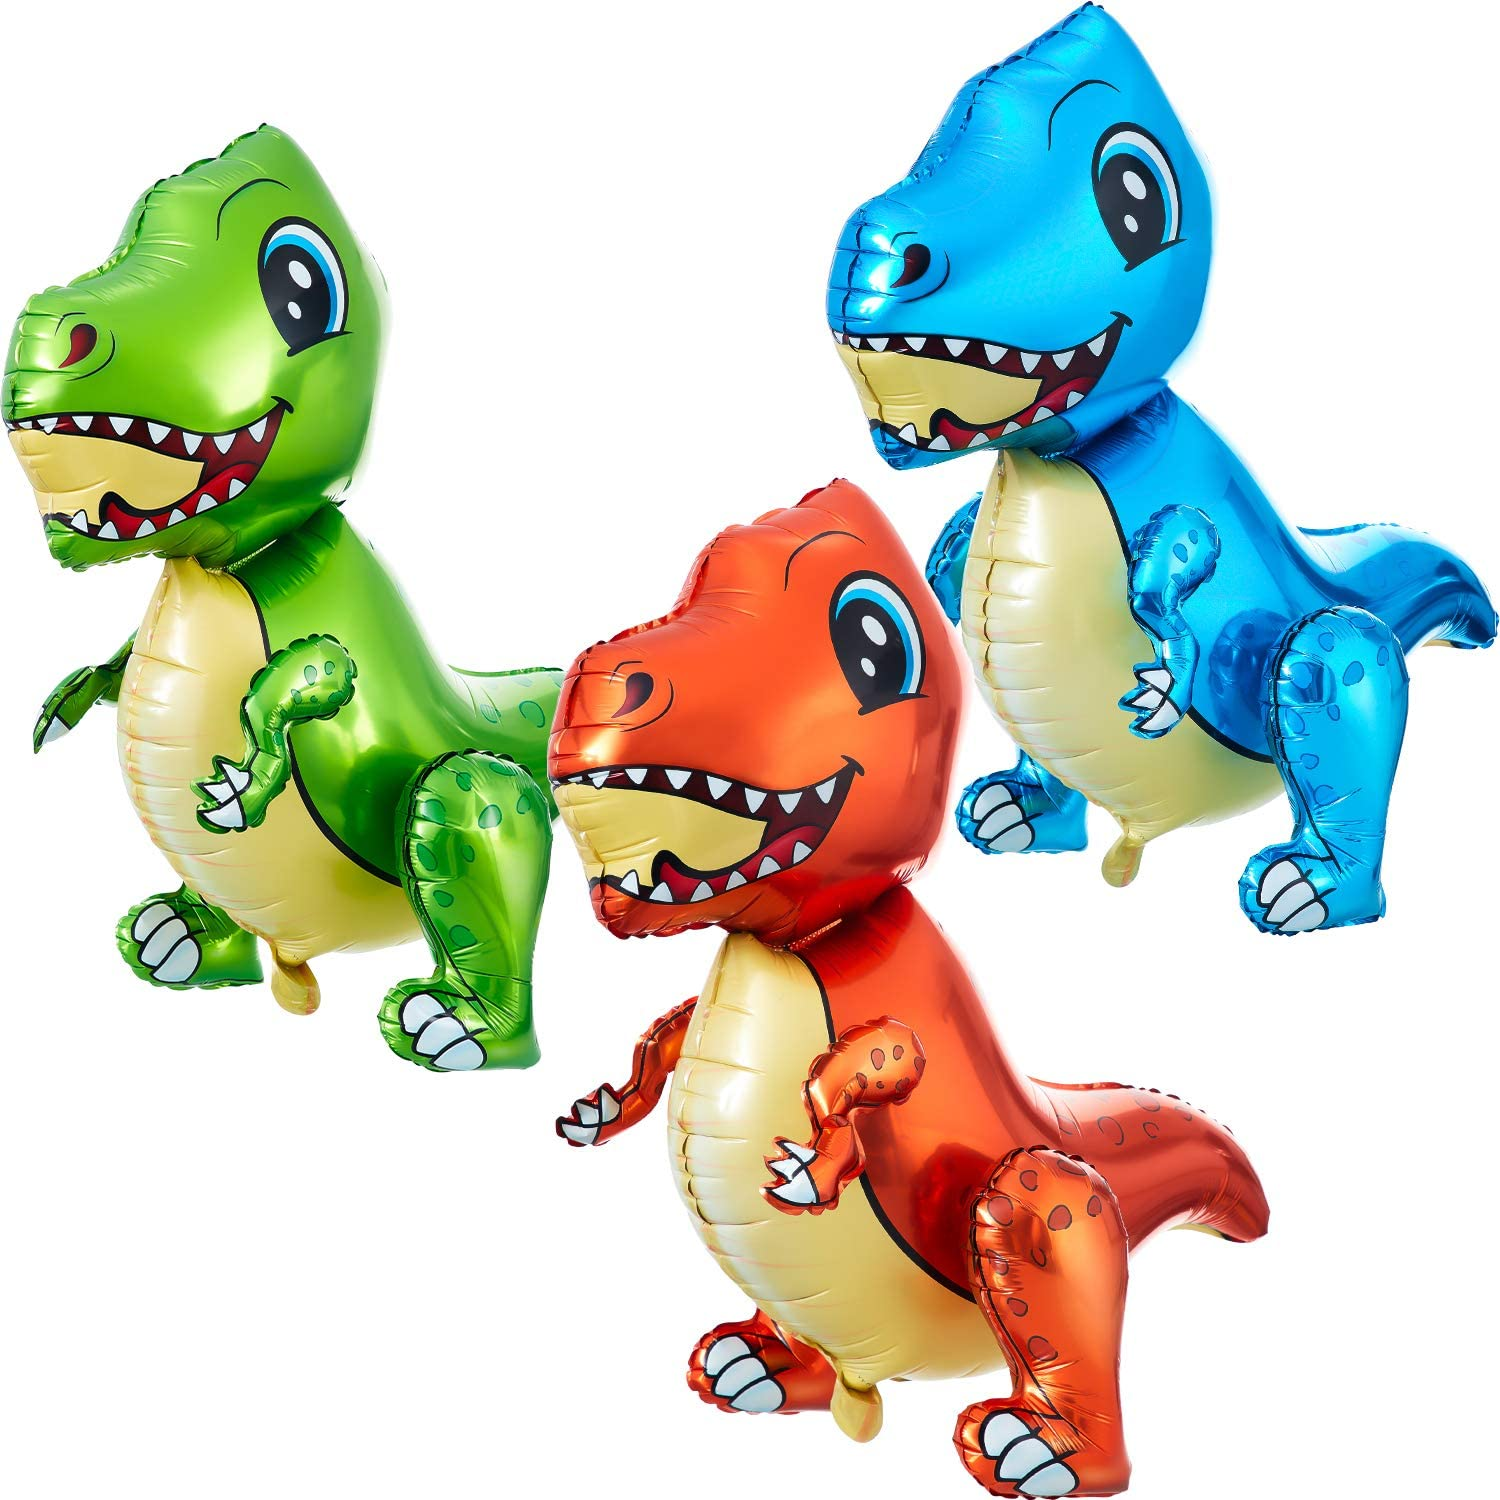 3 Pieces Self Standing Dinosaur Balloons 3d Dinosaur Balloons Inflatable Cartoon 3d Stand Dinosaur Foil Balloon Dinosaur Party Supplies For Dinosaur Jungle Themed Birthday Decorations Amazon Co Uk Toys Games